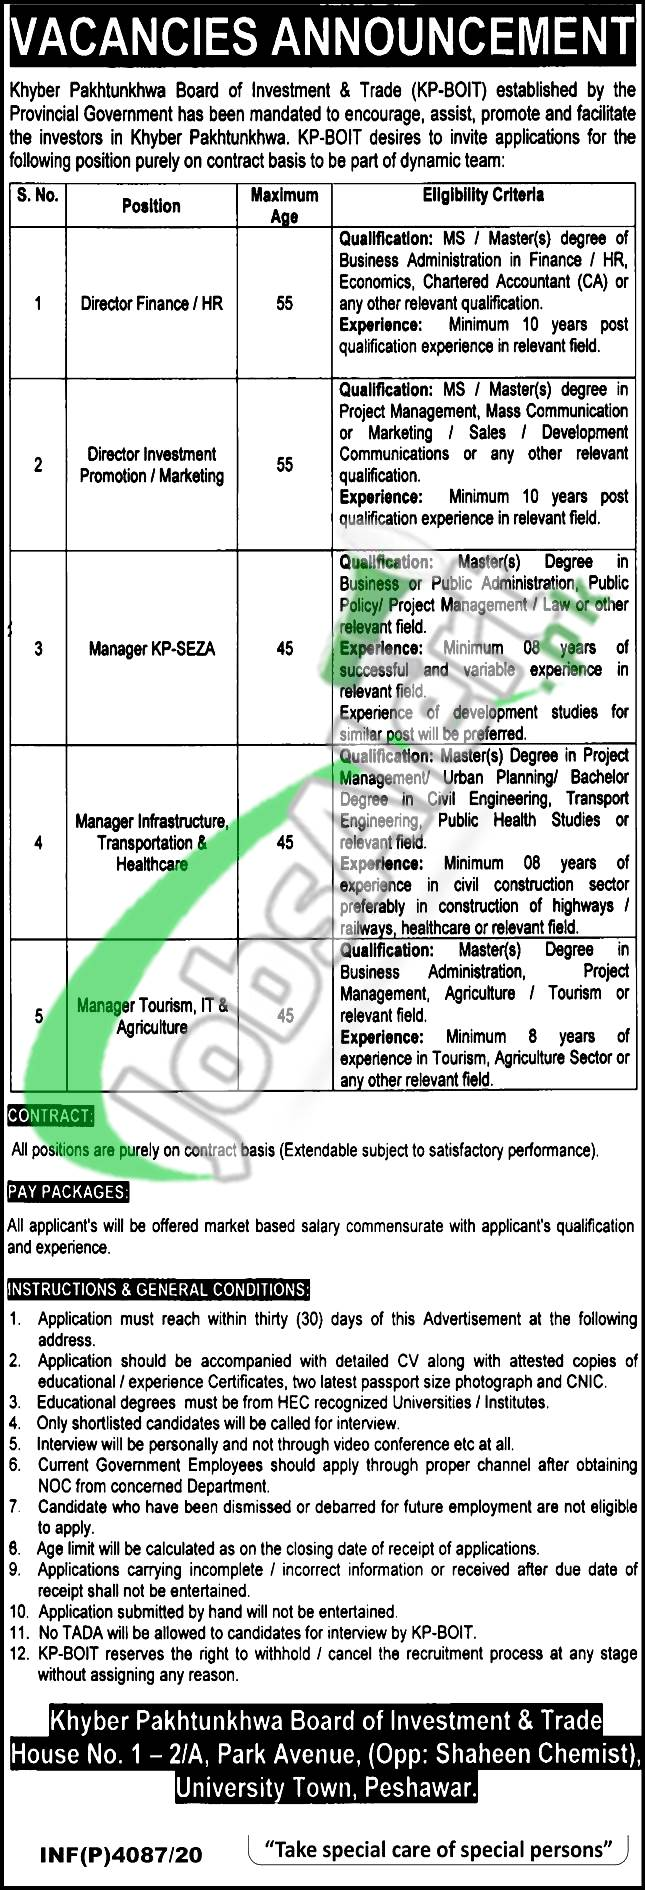 Khyber Pakhtunkhwa Board of Investment & Trade 2020